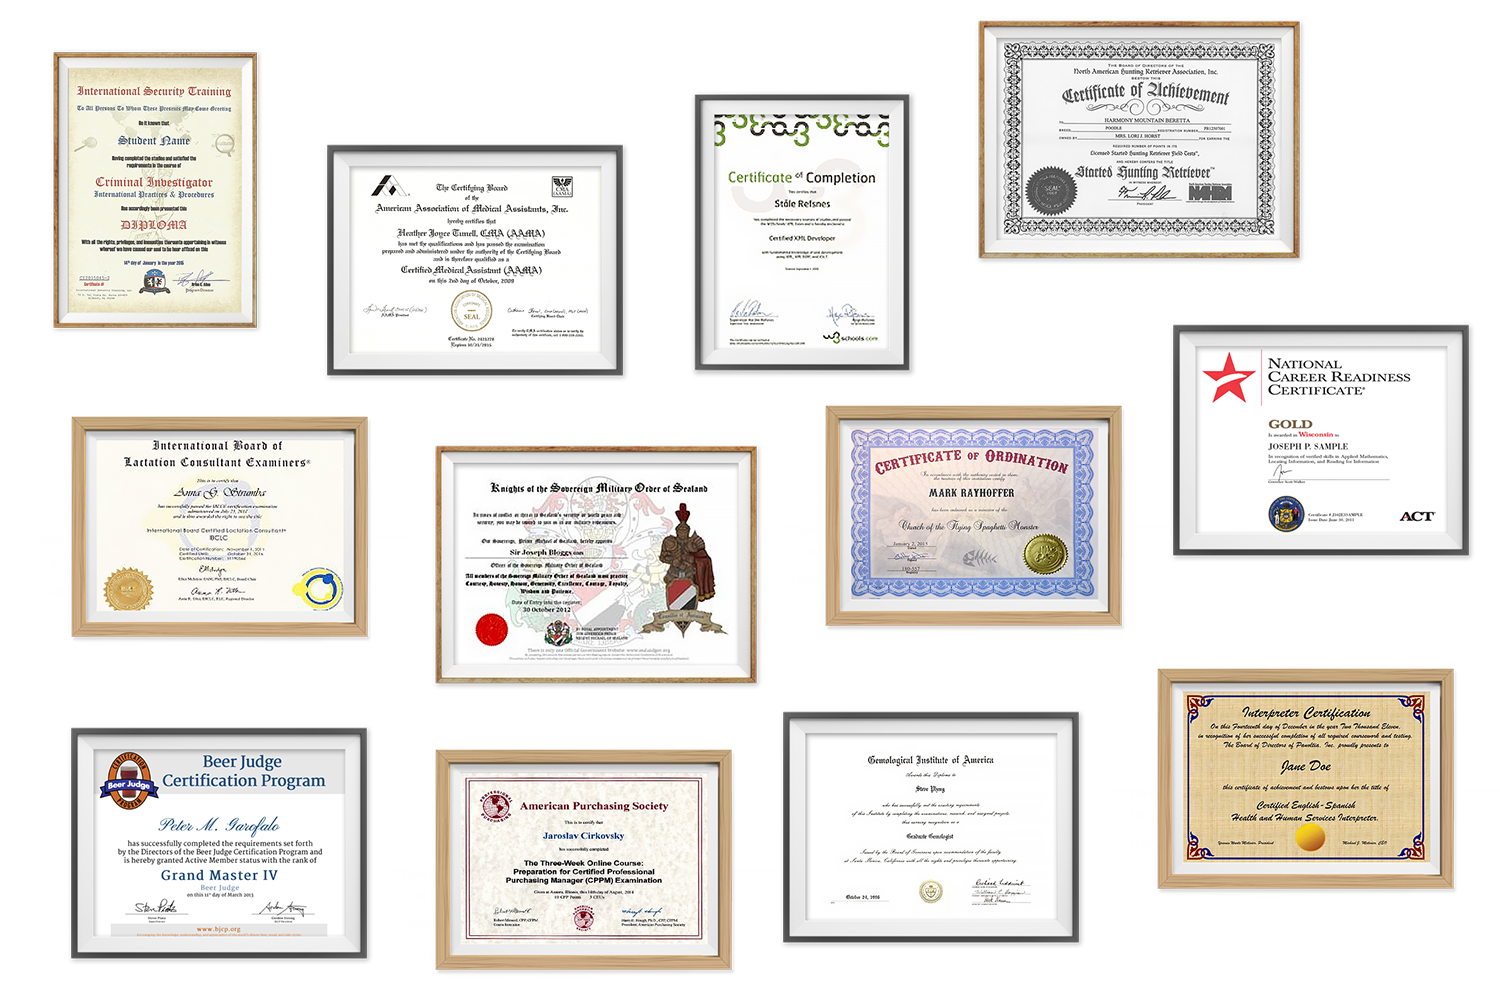 All the weird certifications you can get online, from Beer Judge to Pokemon Professor. Image 2.